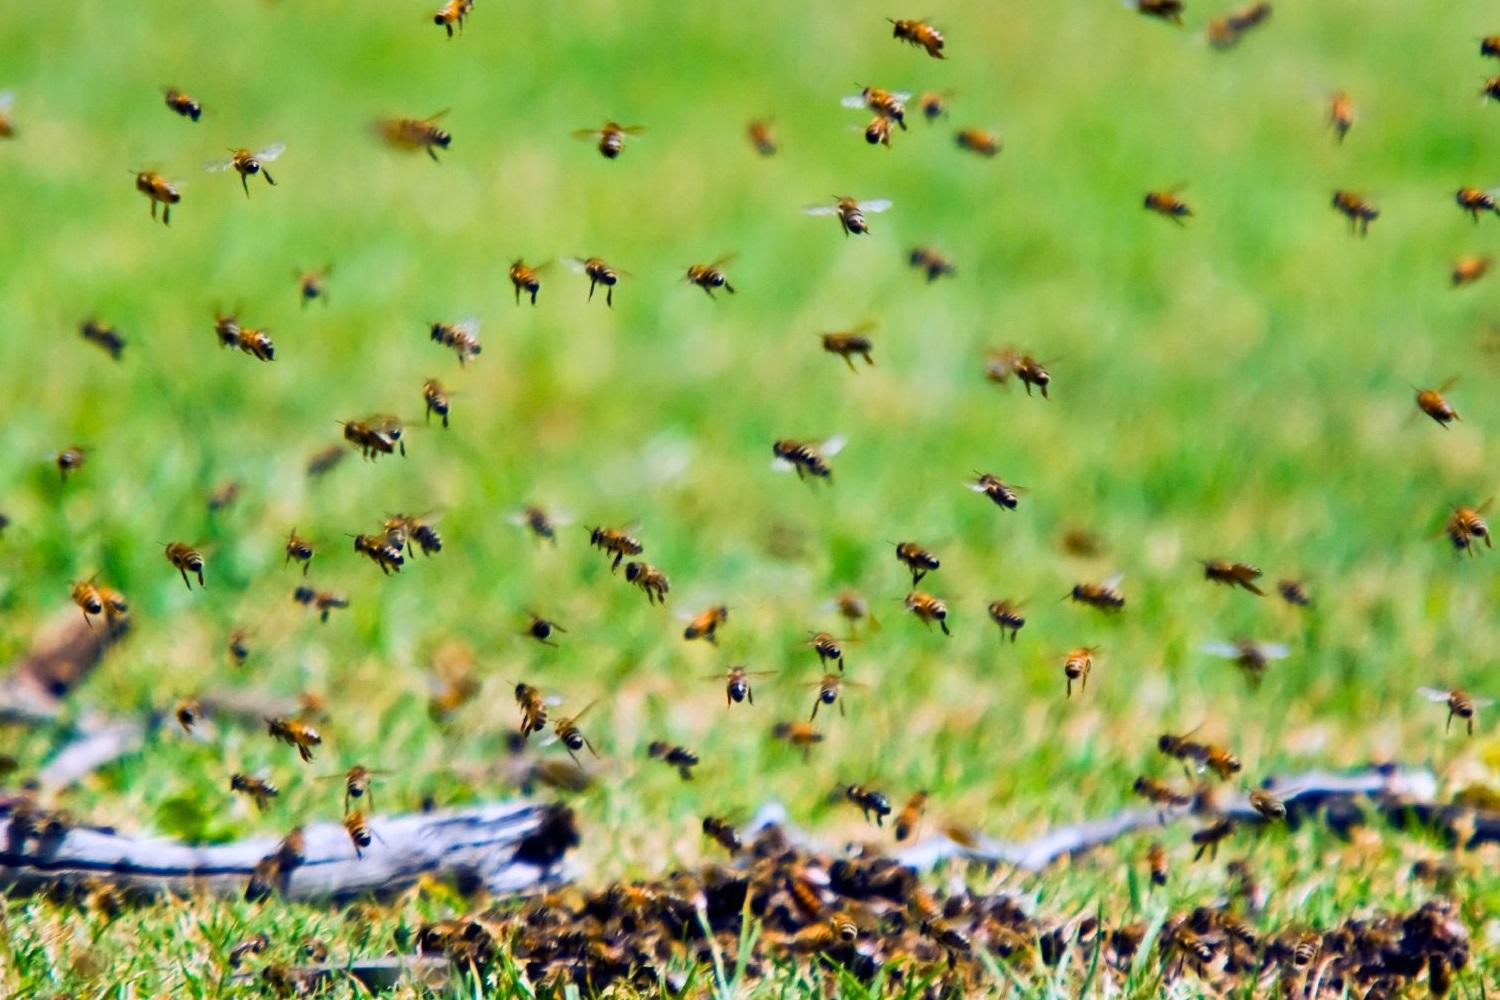 Swarm, the Bitcoin Crowdfunder Creating a Buzz